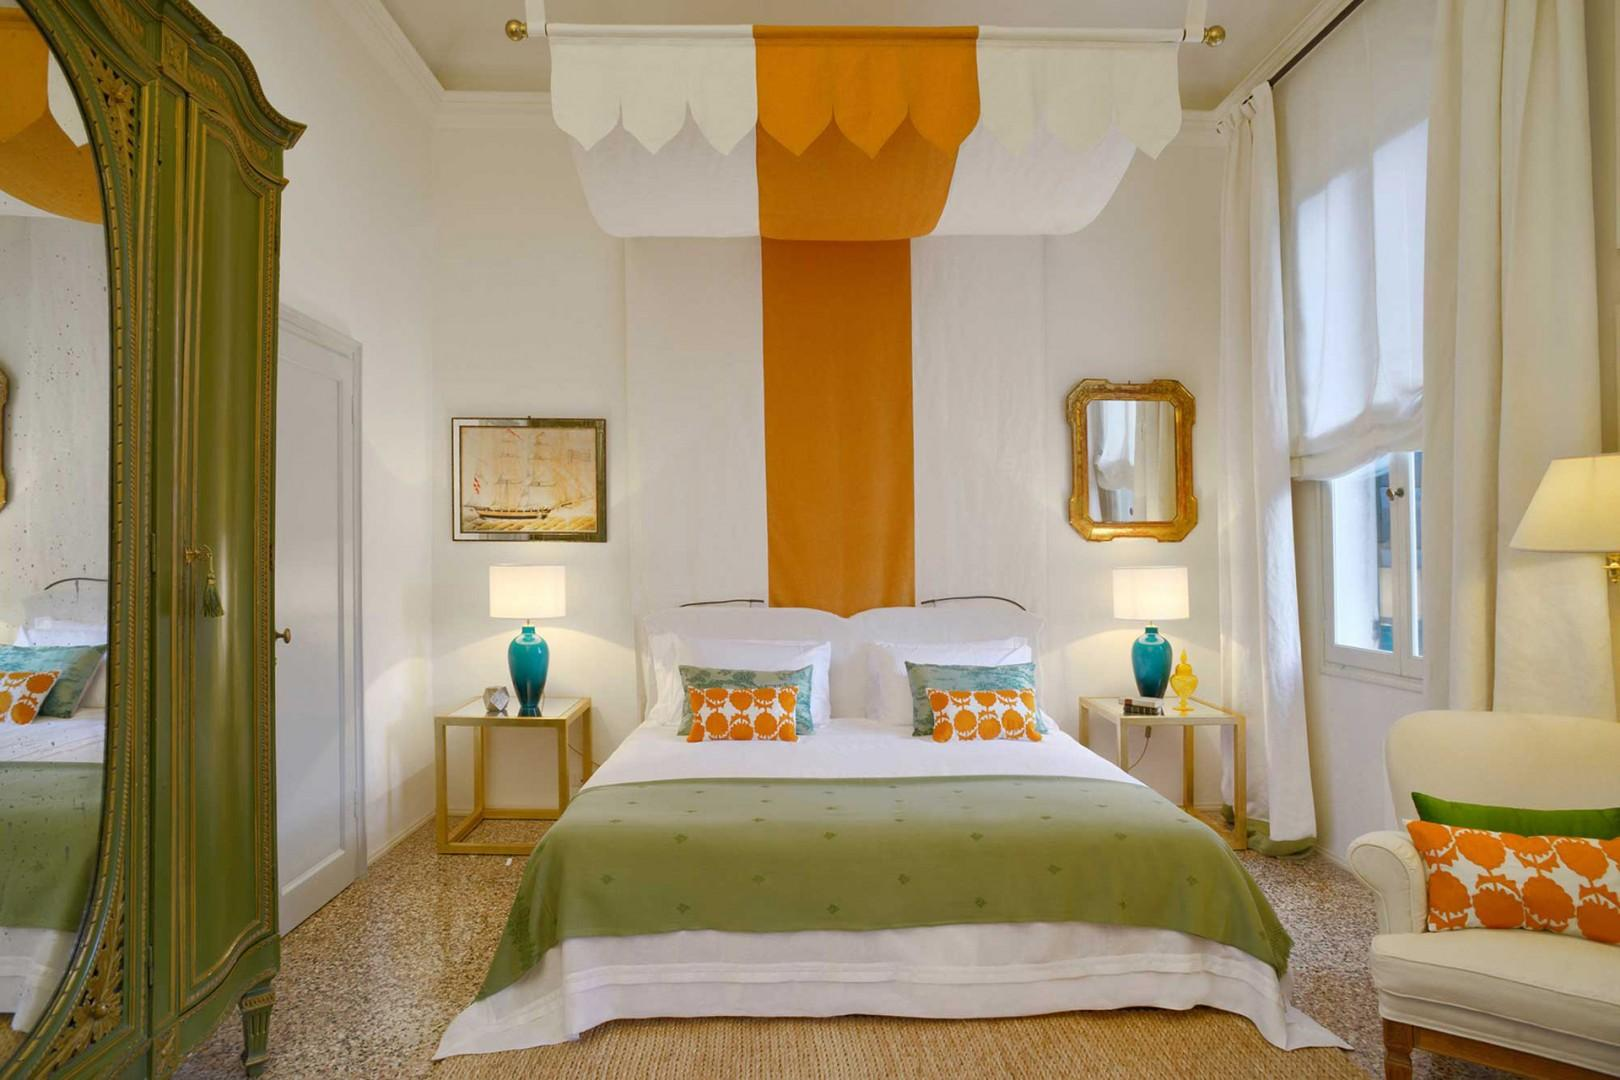 A canopy with a dramatic orange strip decorates the bed in bedroom 1.